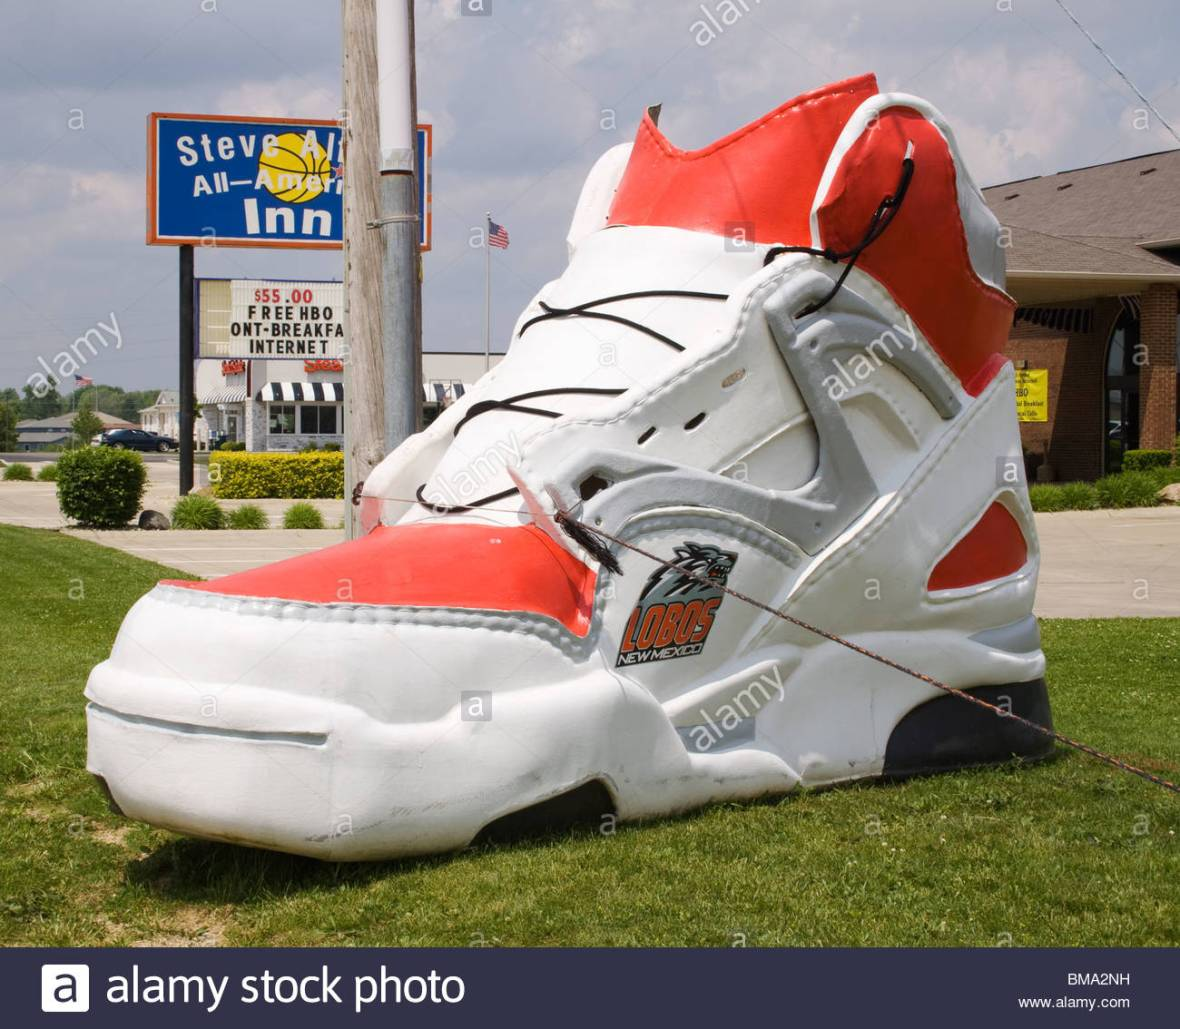 z giant-sneaker-at-a-shoe-store-in-new-castle-indiana-BMA2NH